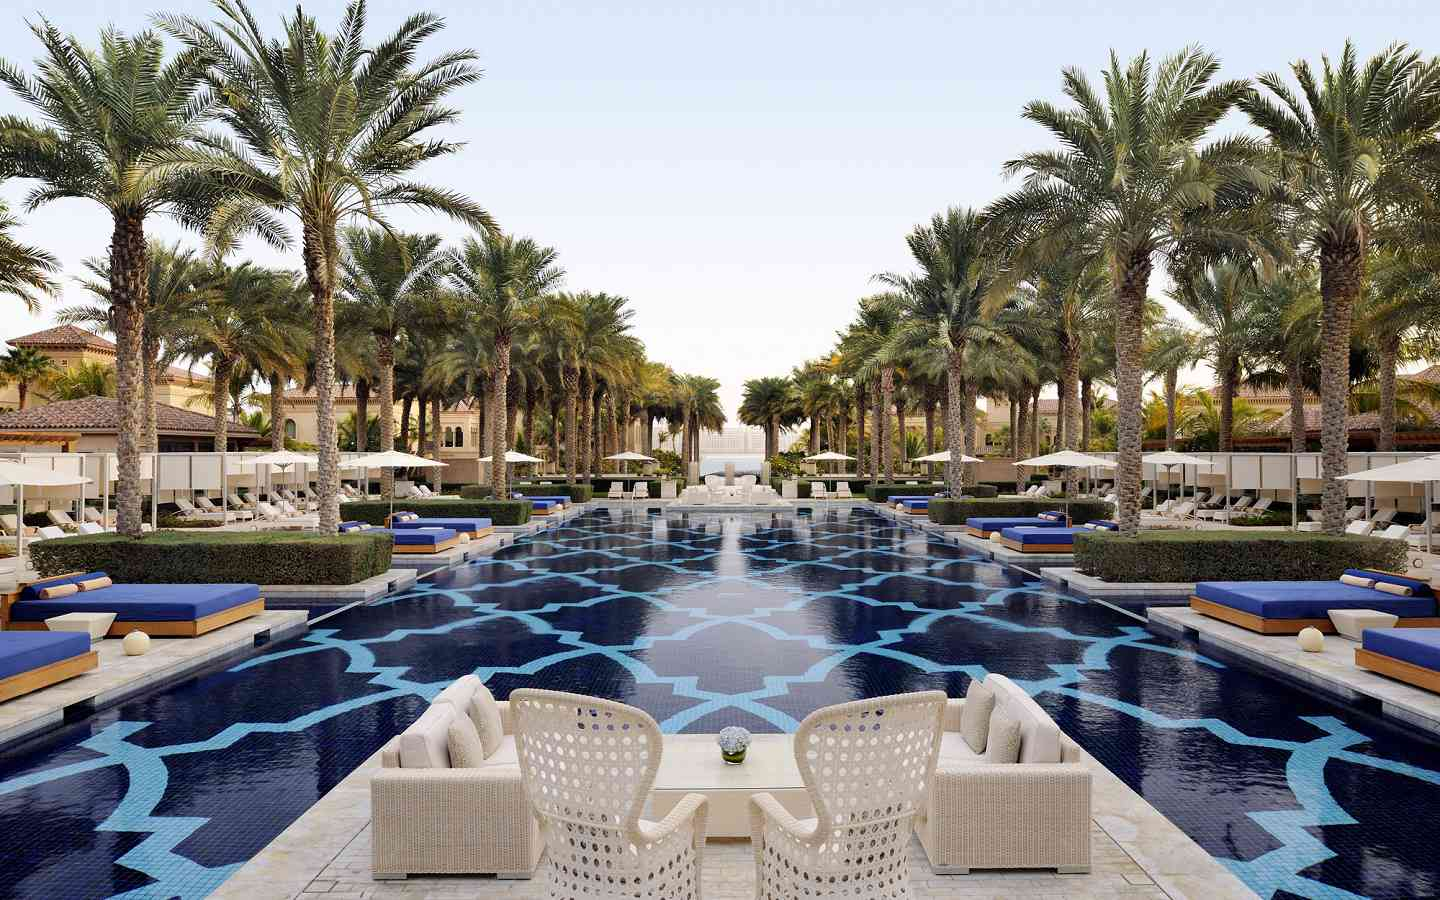 Picturesque blue tiled resort pool in Dubai, bordered with sunning beds and palm trees